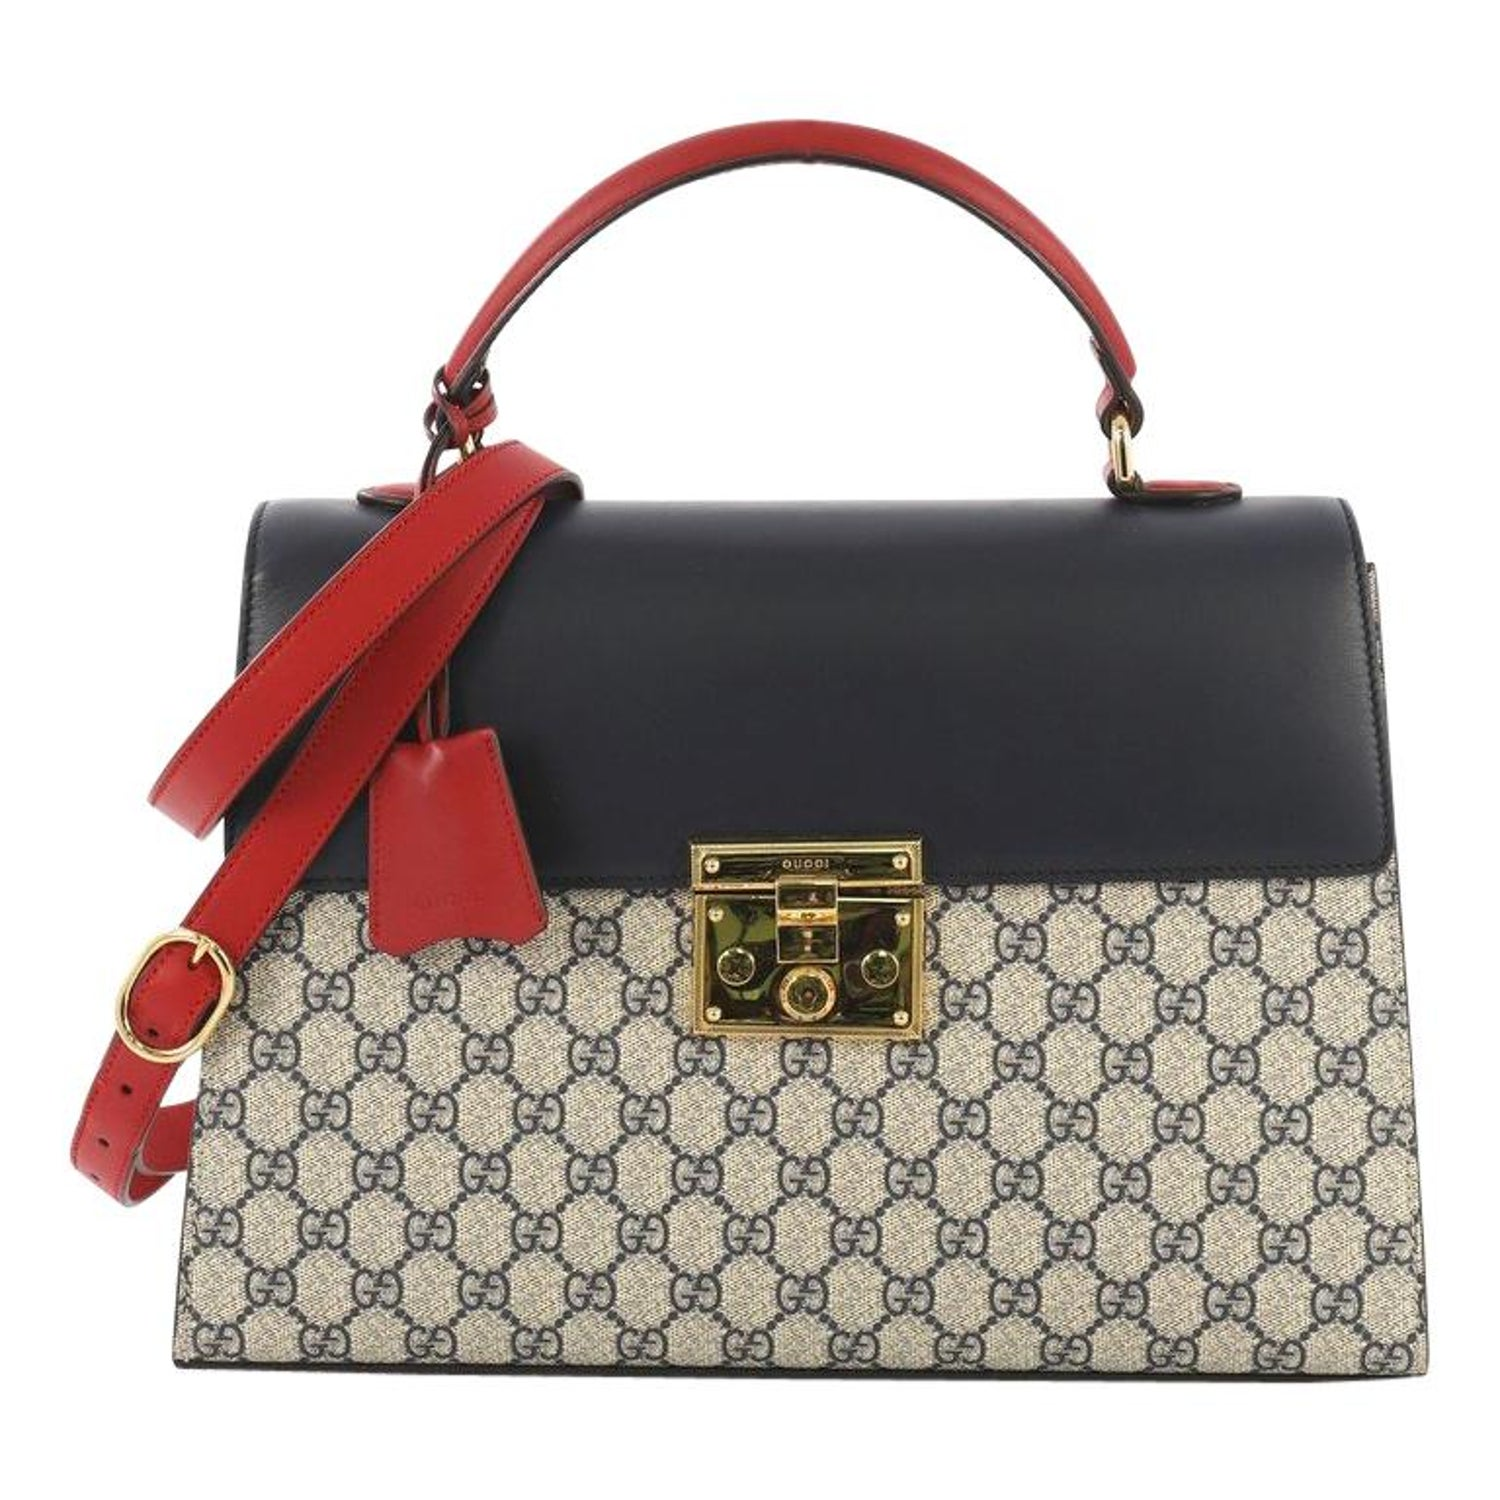 80245fcd8bc Gucci Padlock Top Handle Bag GG Coated Canvas and Leather Medium For Sale  at 1stdibs